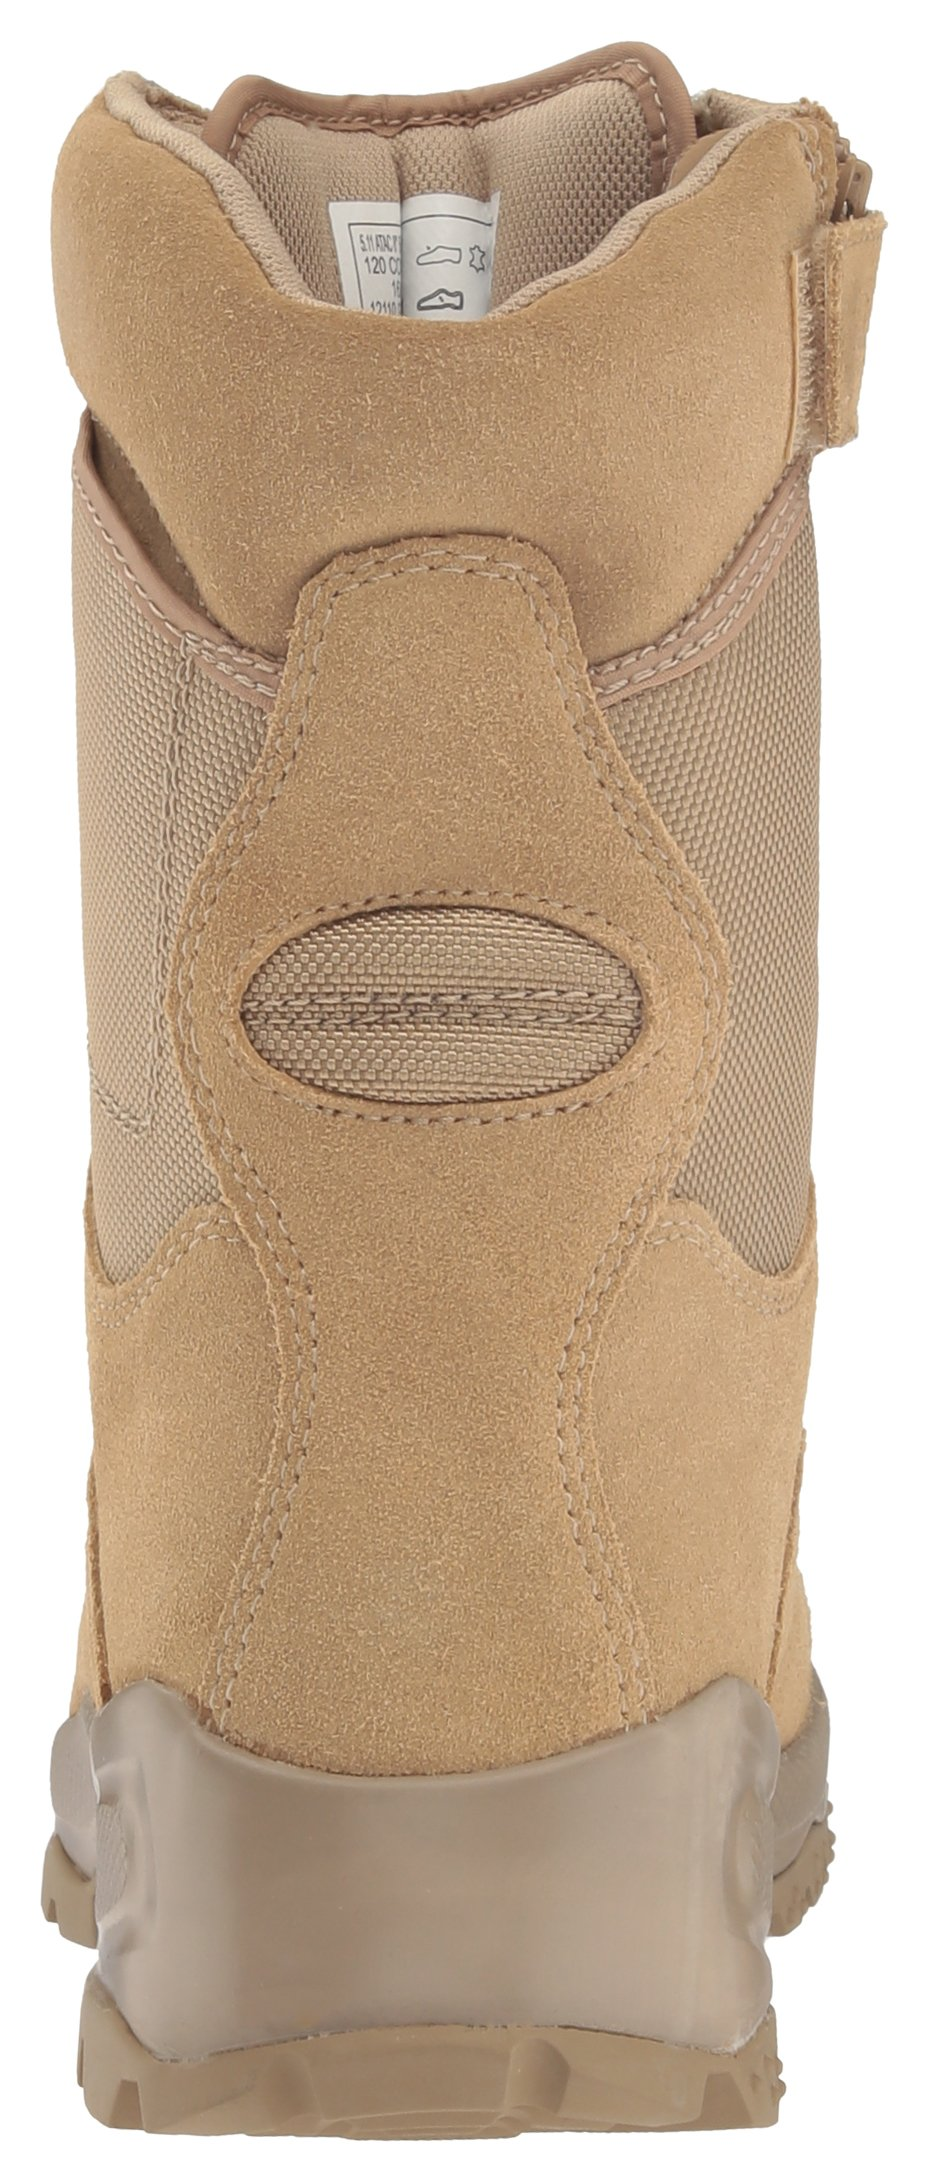 5.11 Atac 8In Boot-U, Coyote Brown, 11 D(M) US by 5.11 (Image #2)